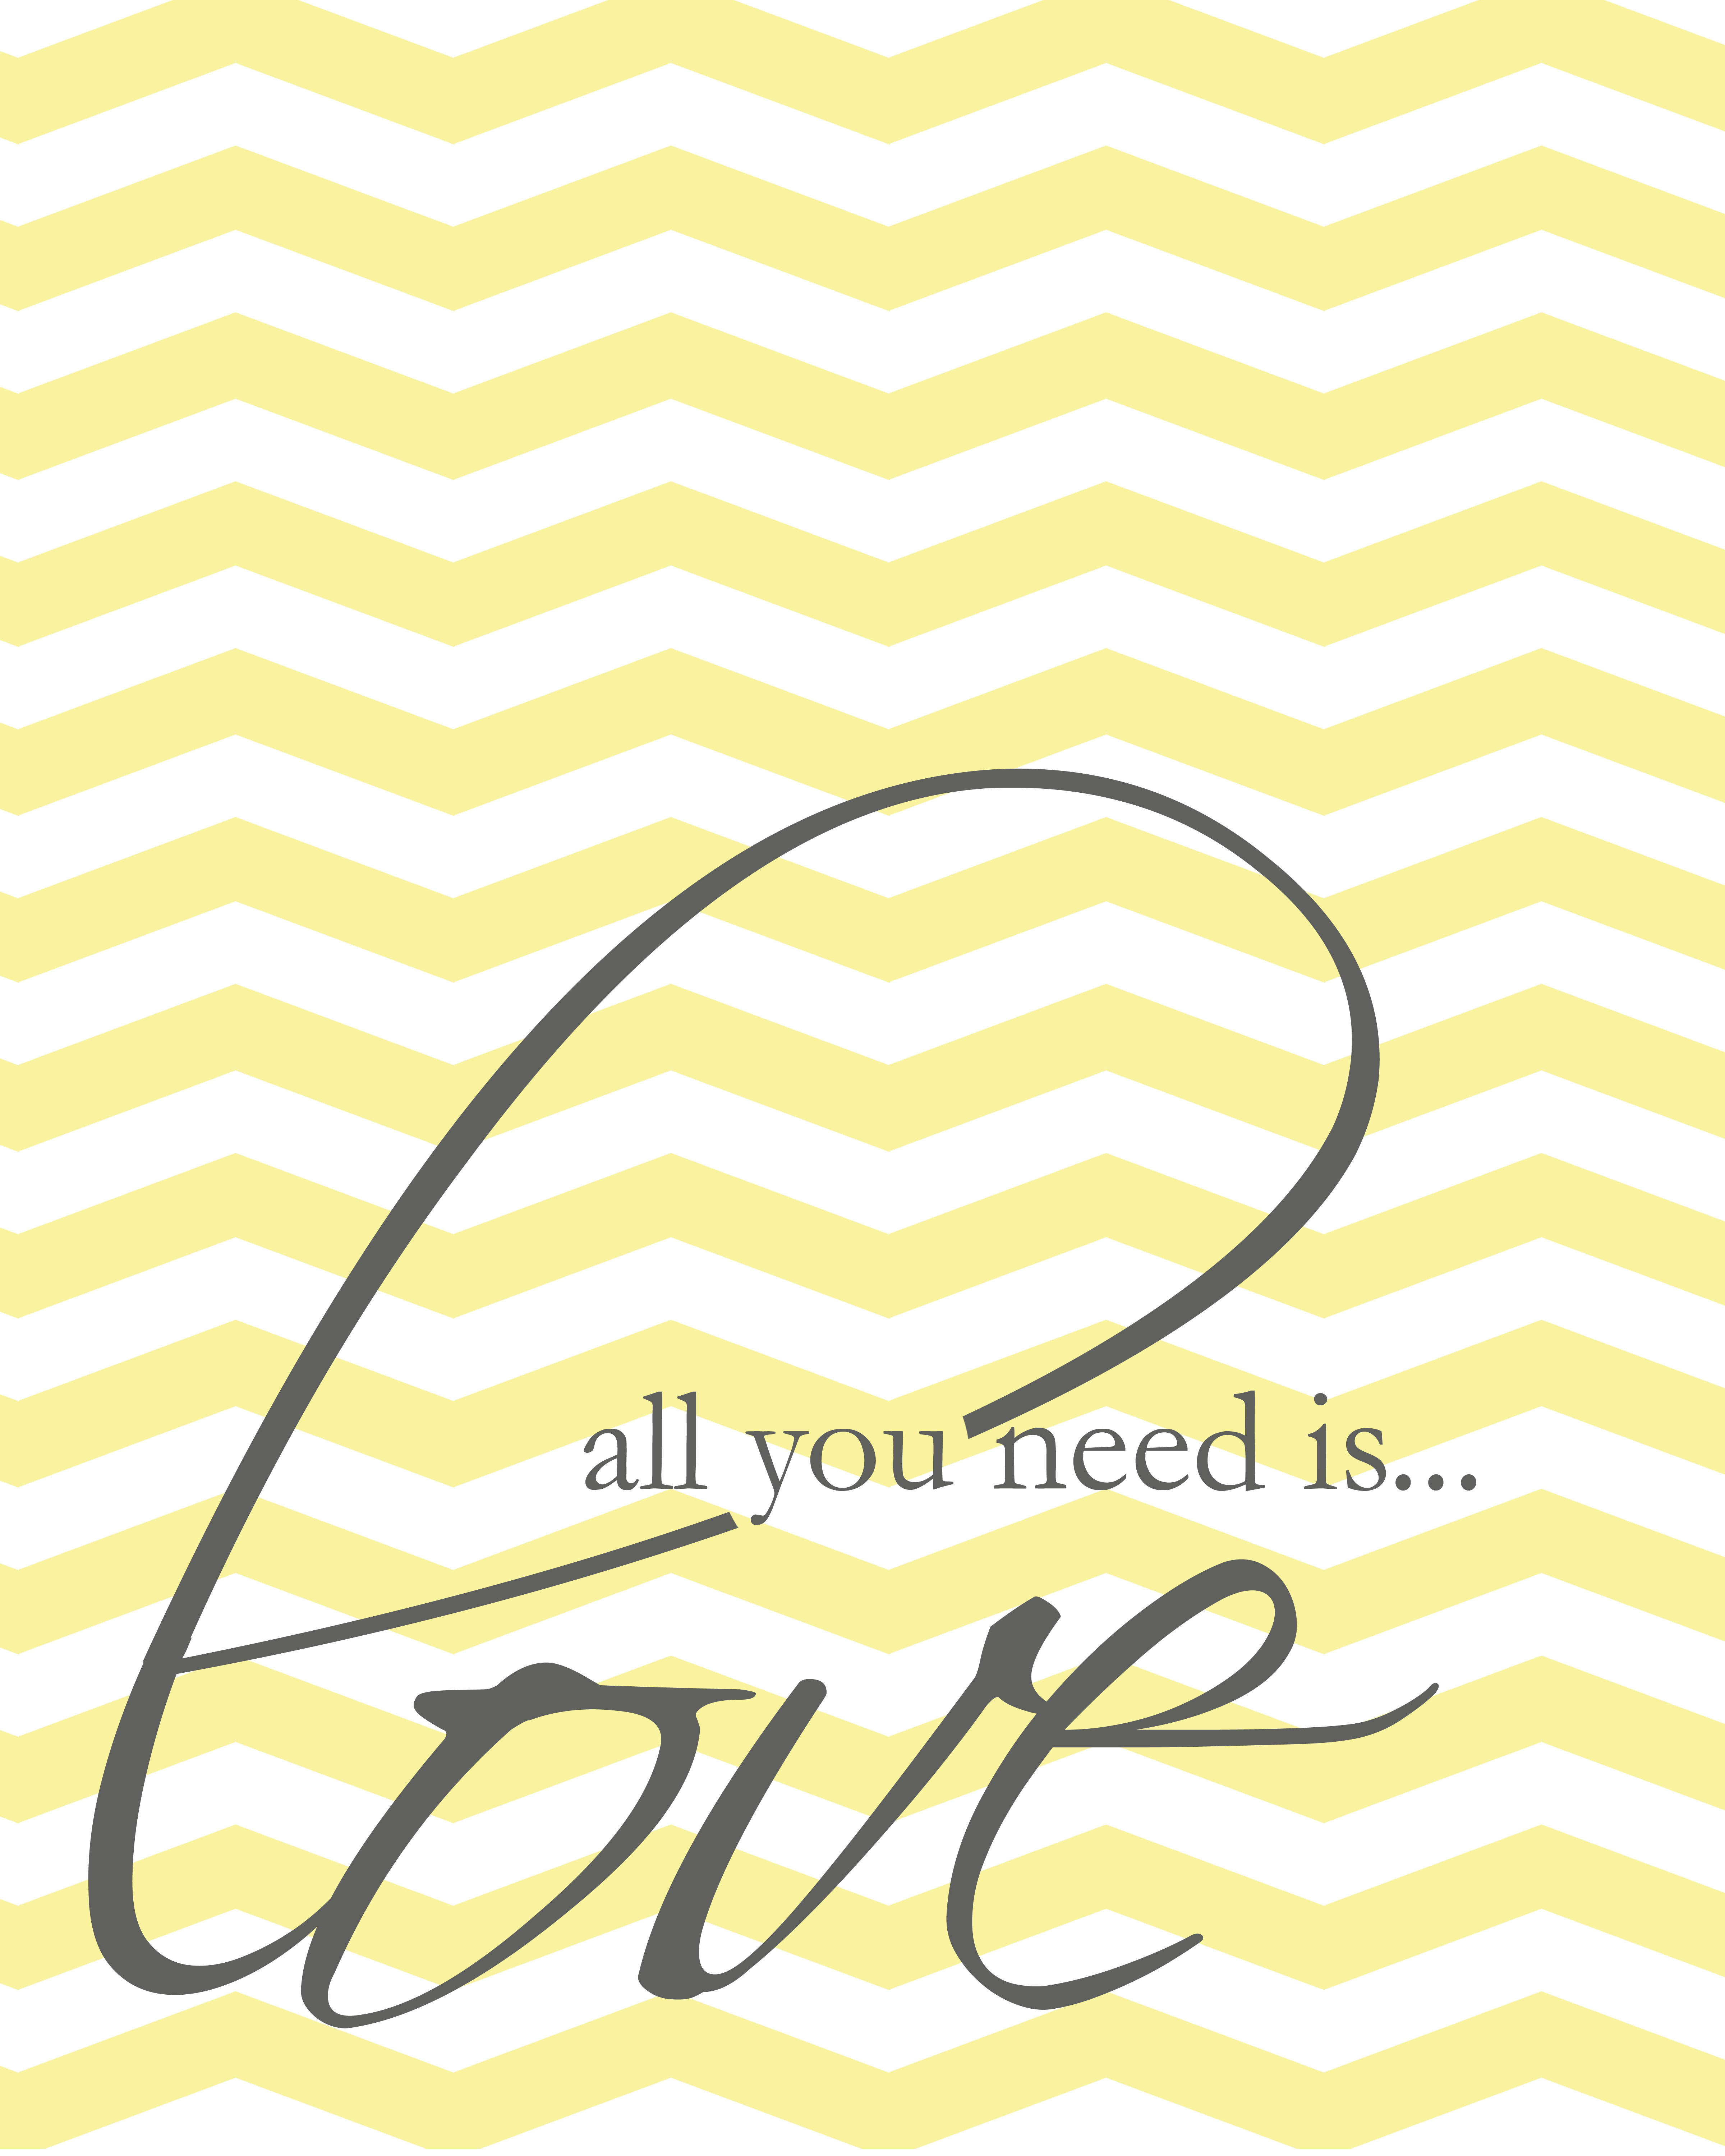 Wall Decor All You Need Is Love : Quot all you need is love free wall art printable the